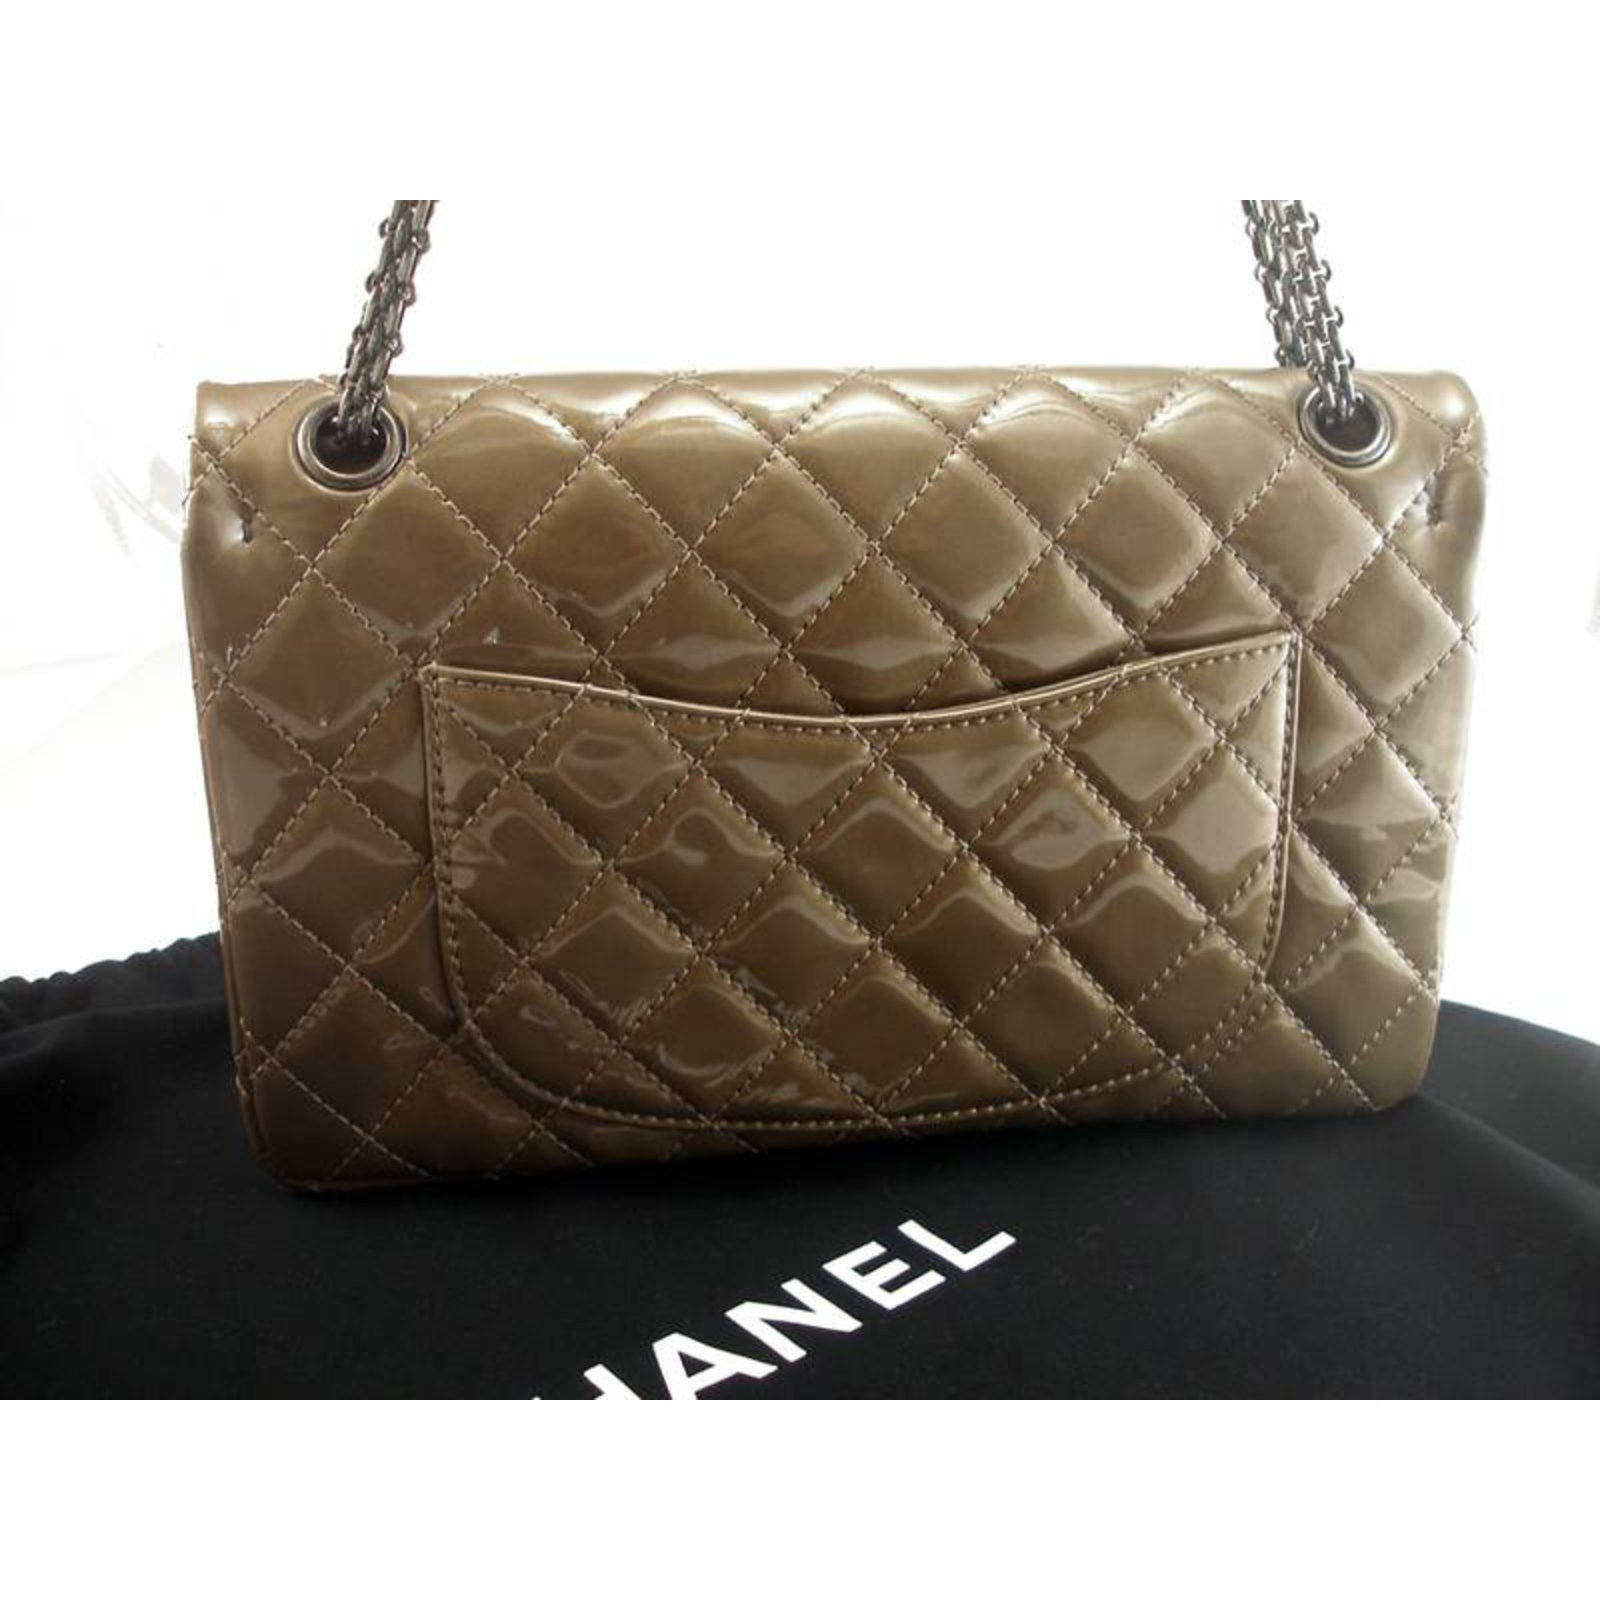 5a35bf02381f Chanel Reissue 227 Handbags Patent leather Taupe ref.27543 - Joli Closet